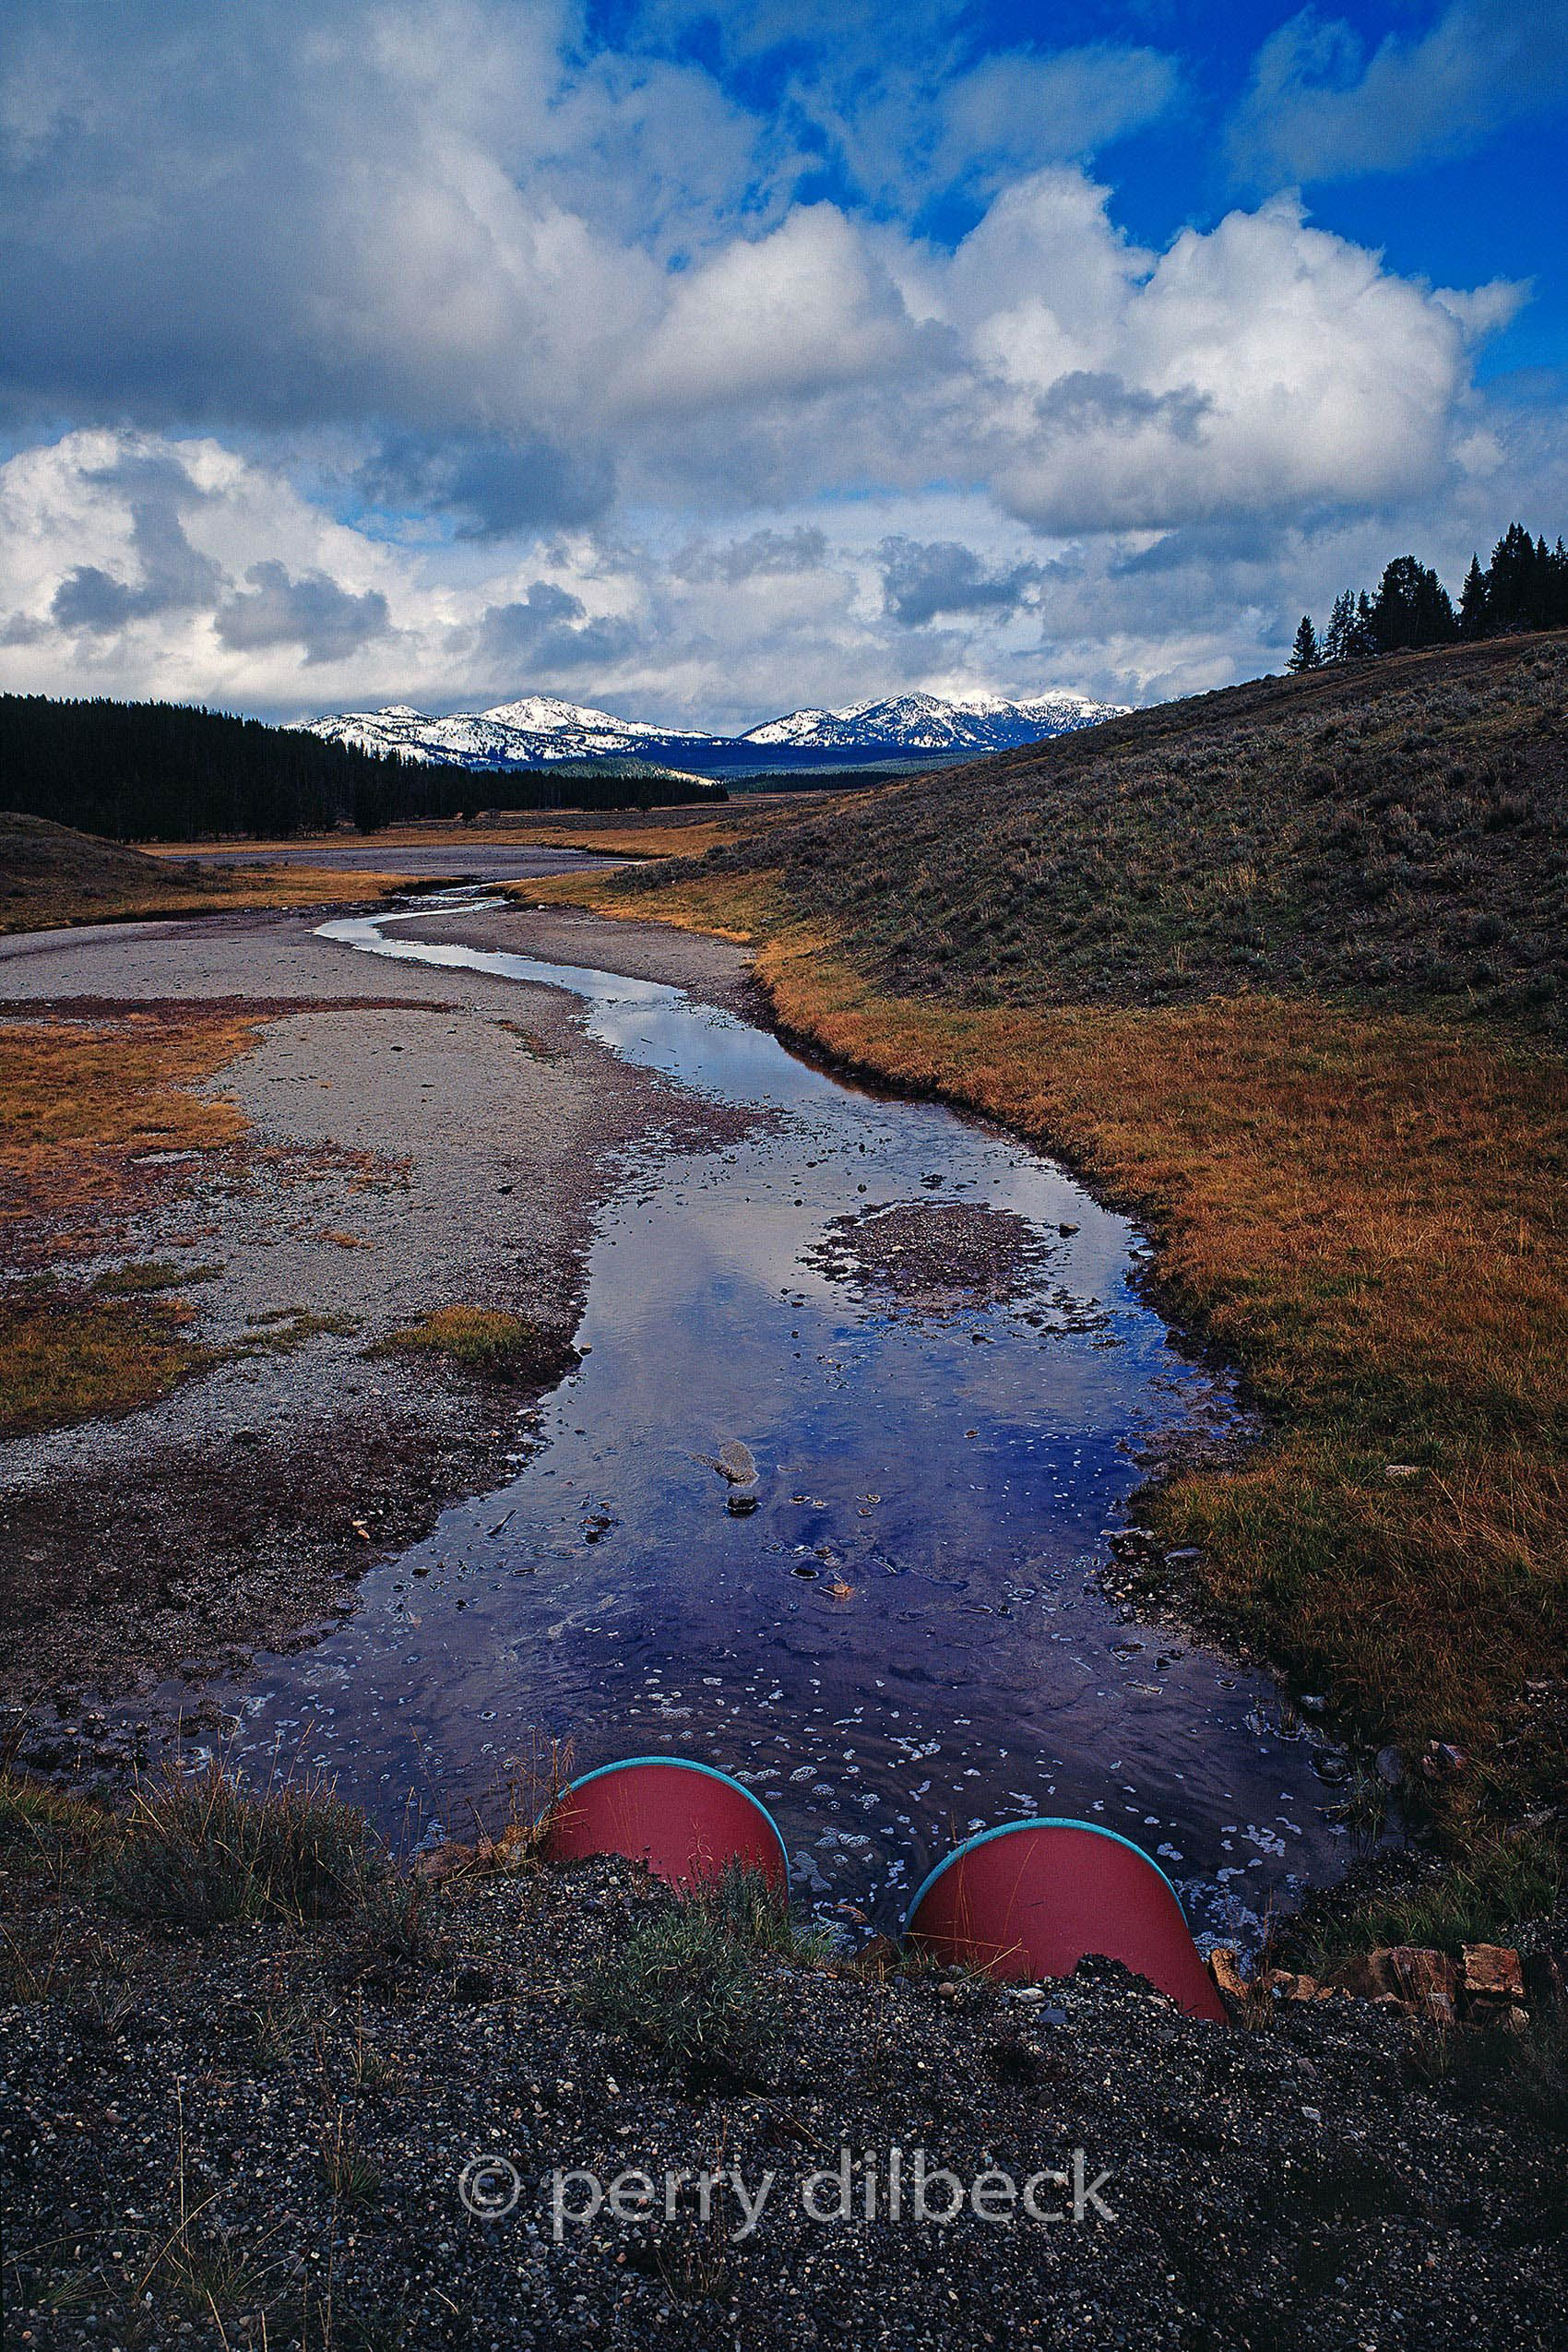 3a69yellowstone19smallSHARP.jpg